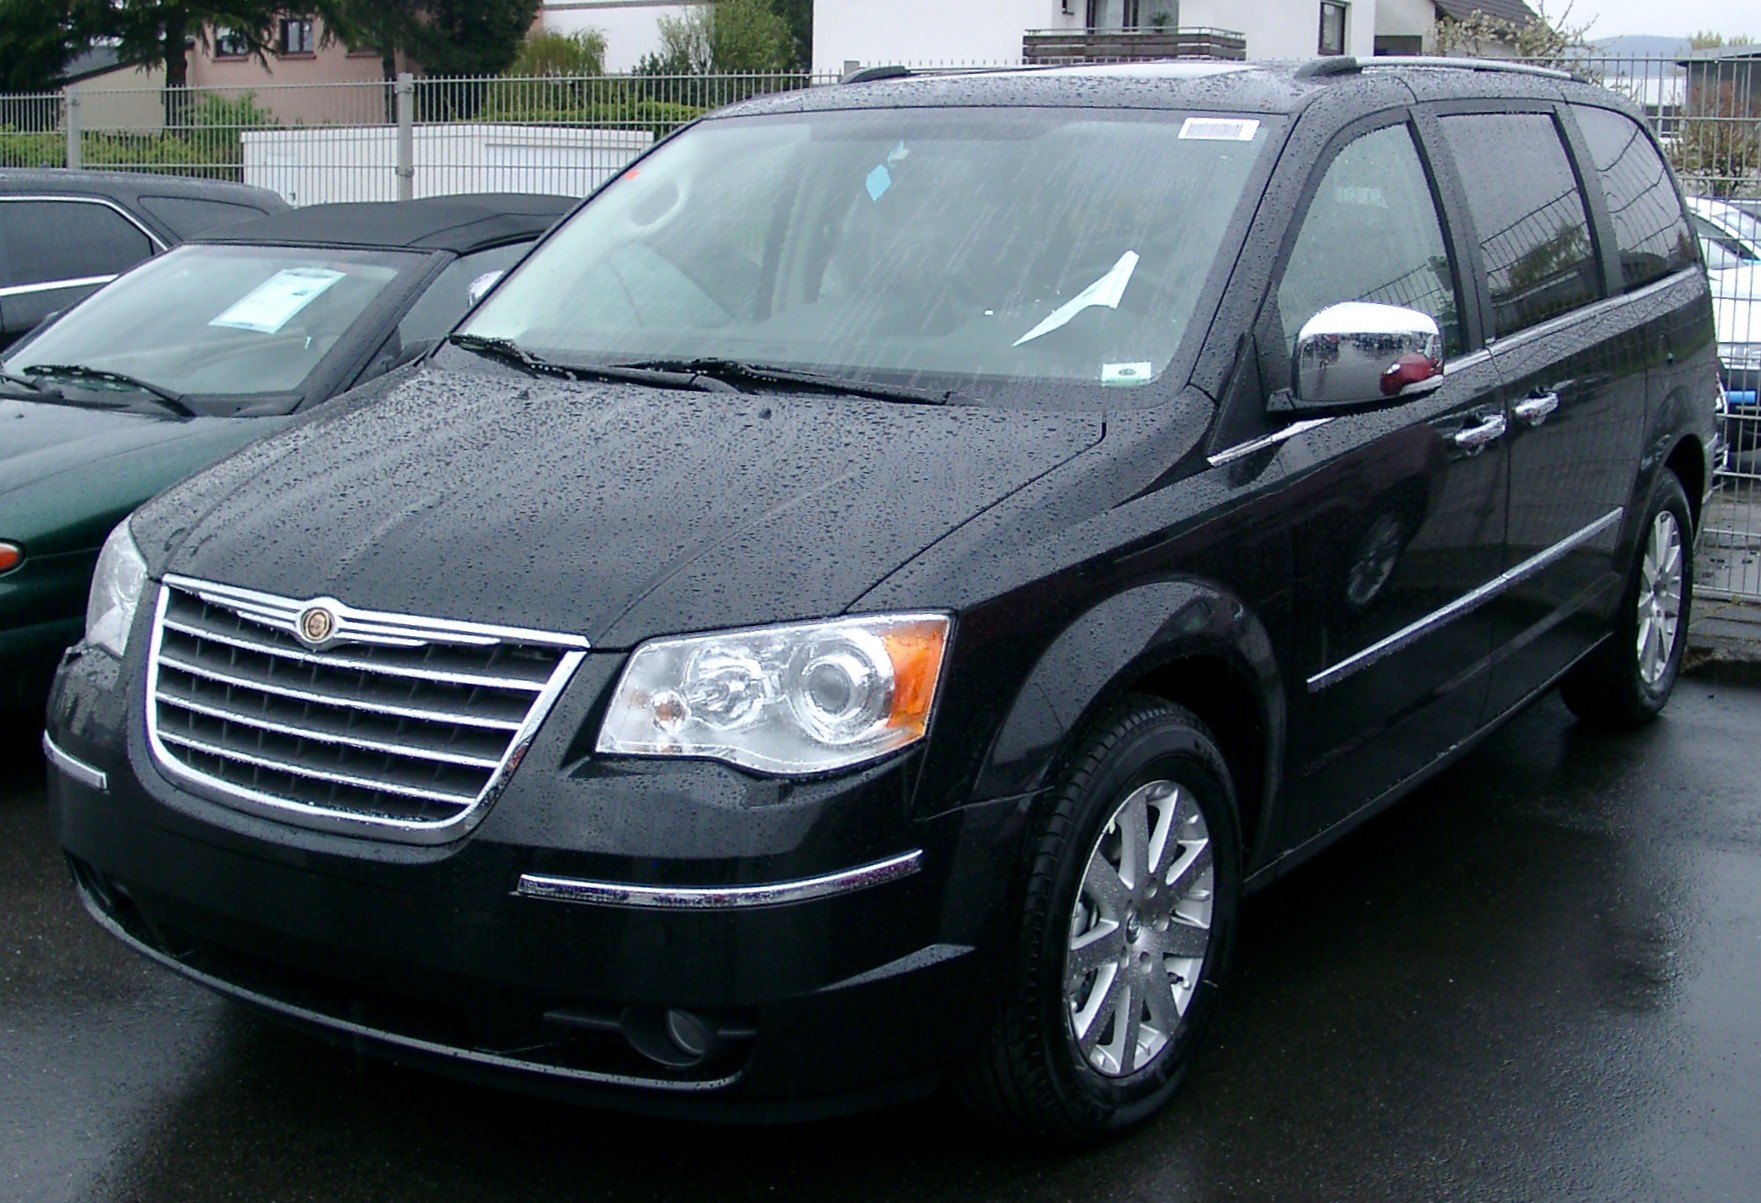 2010 chrysler voyager partsopen. Black Bedroom Furniture Sets. Home Design Ideas